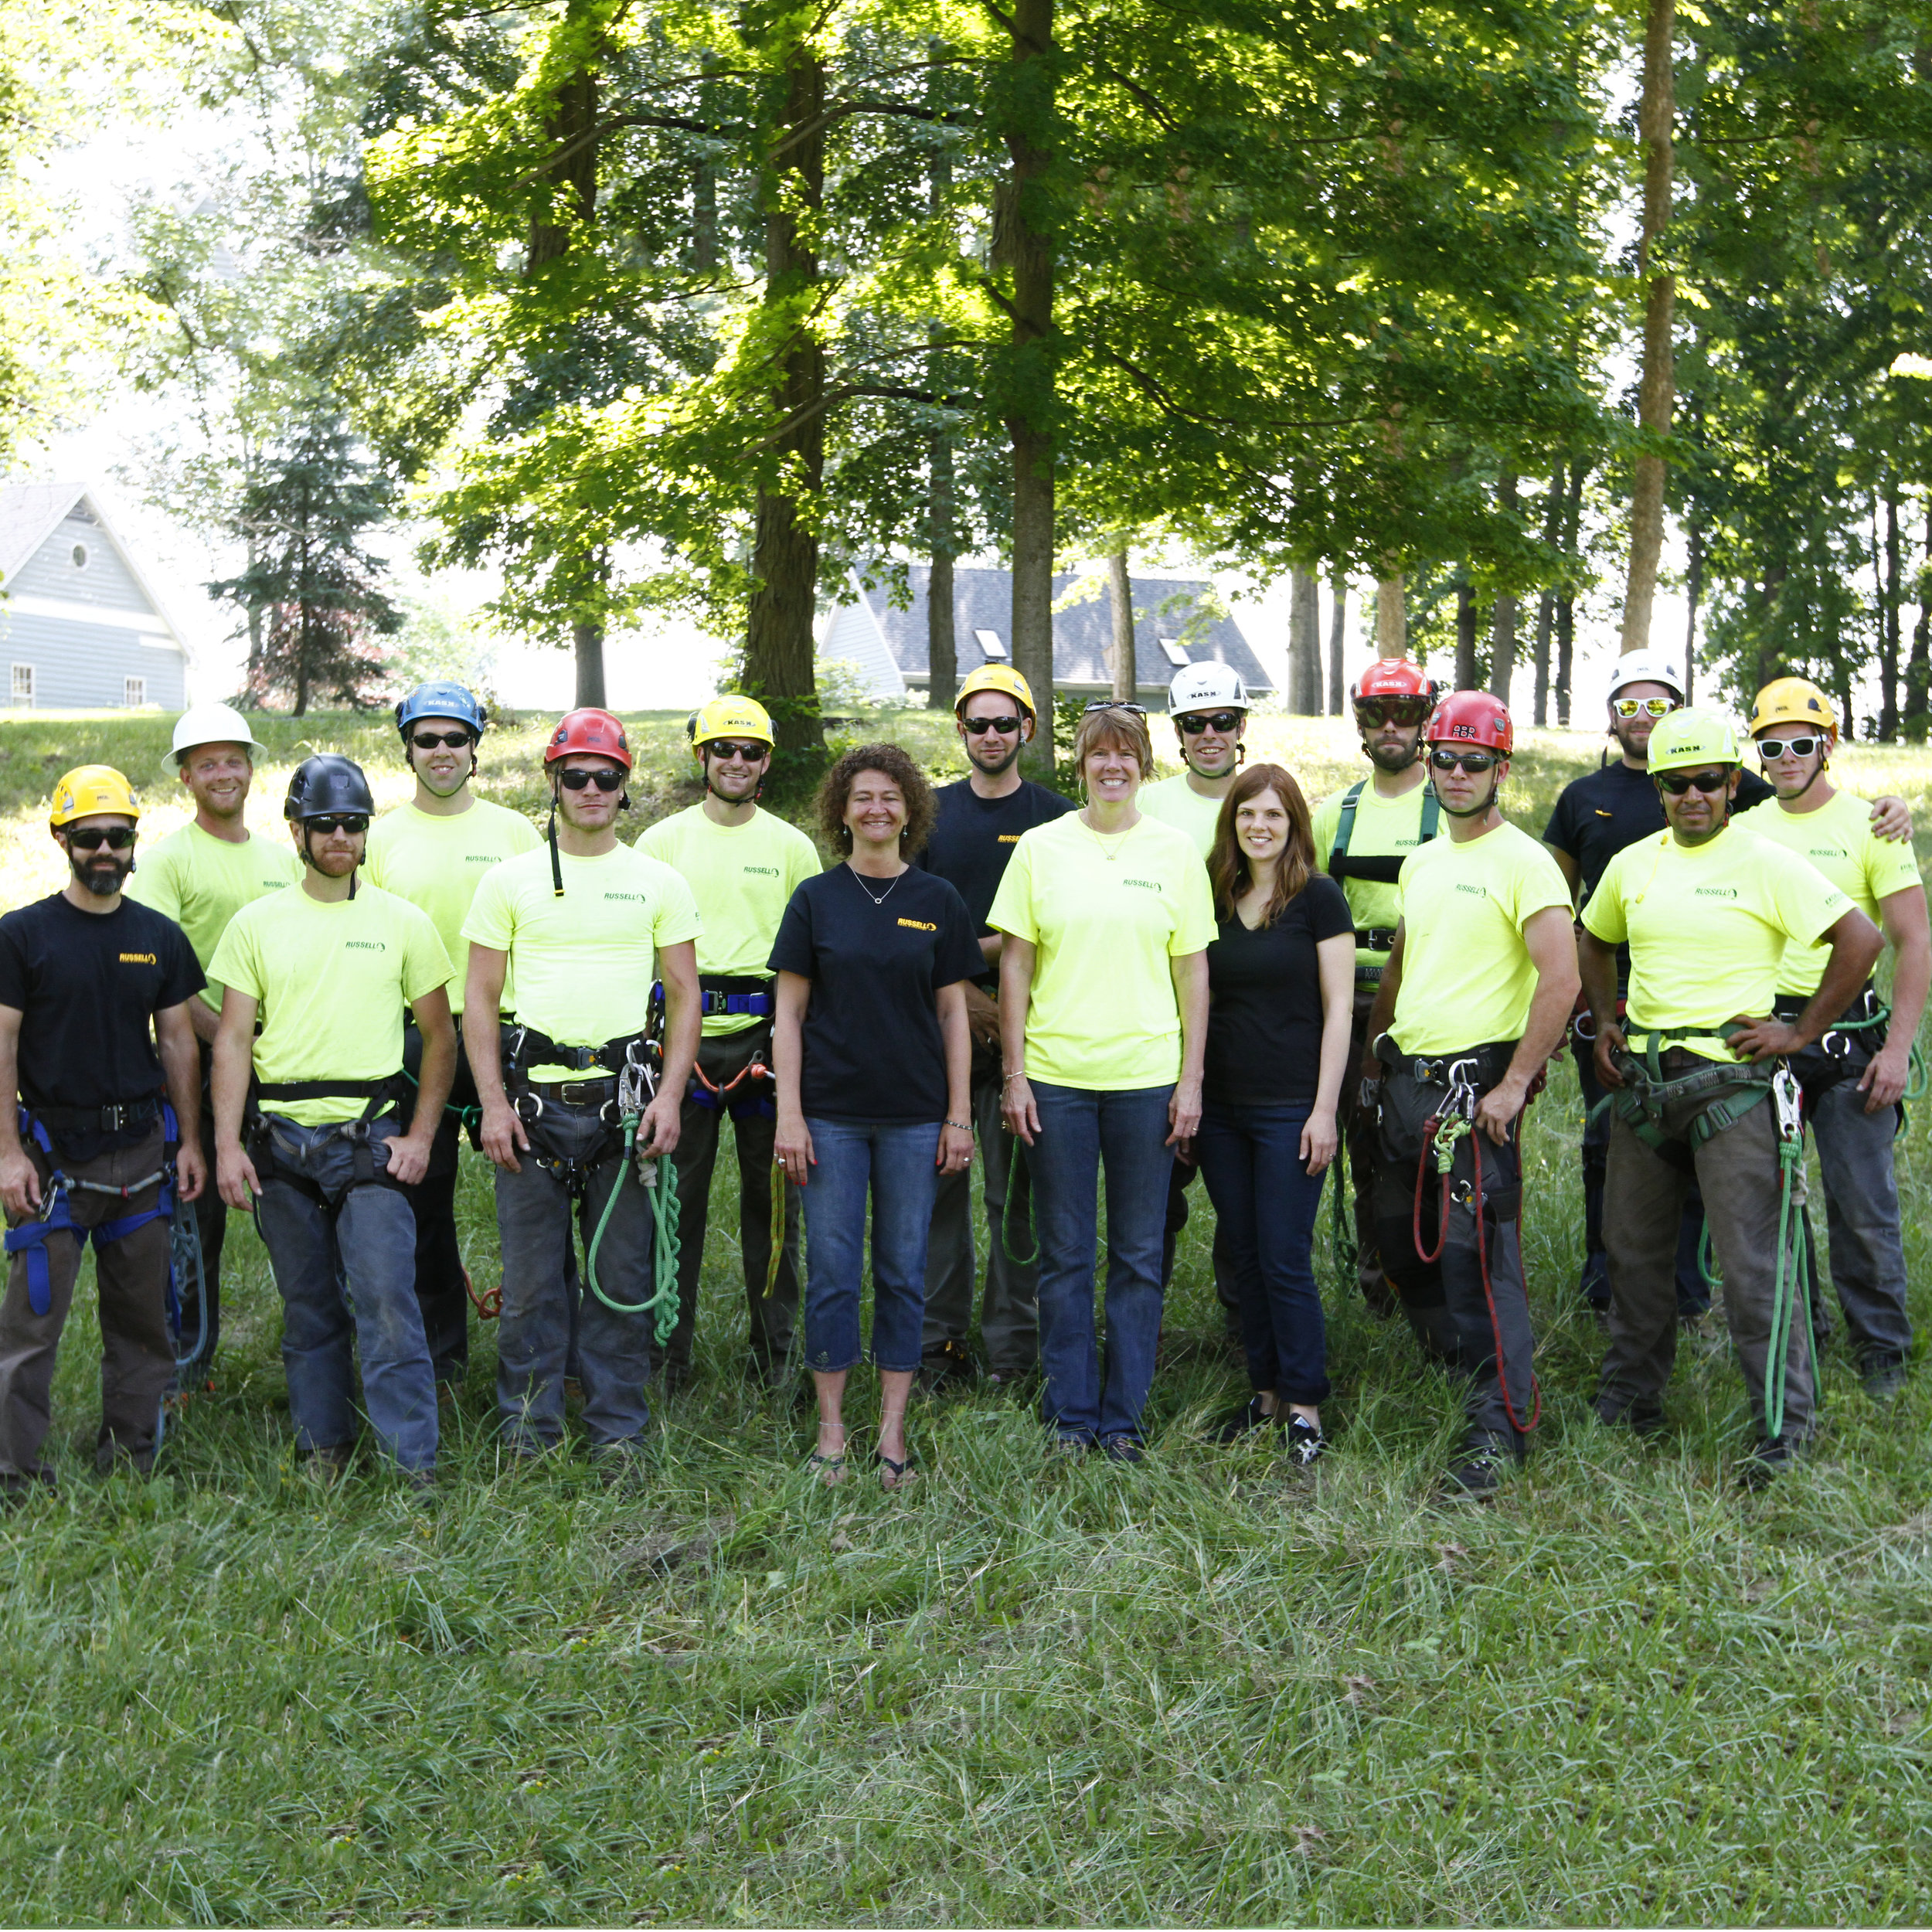 - Our staff reaches 16 employees with eight ISA Certified Arborists